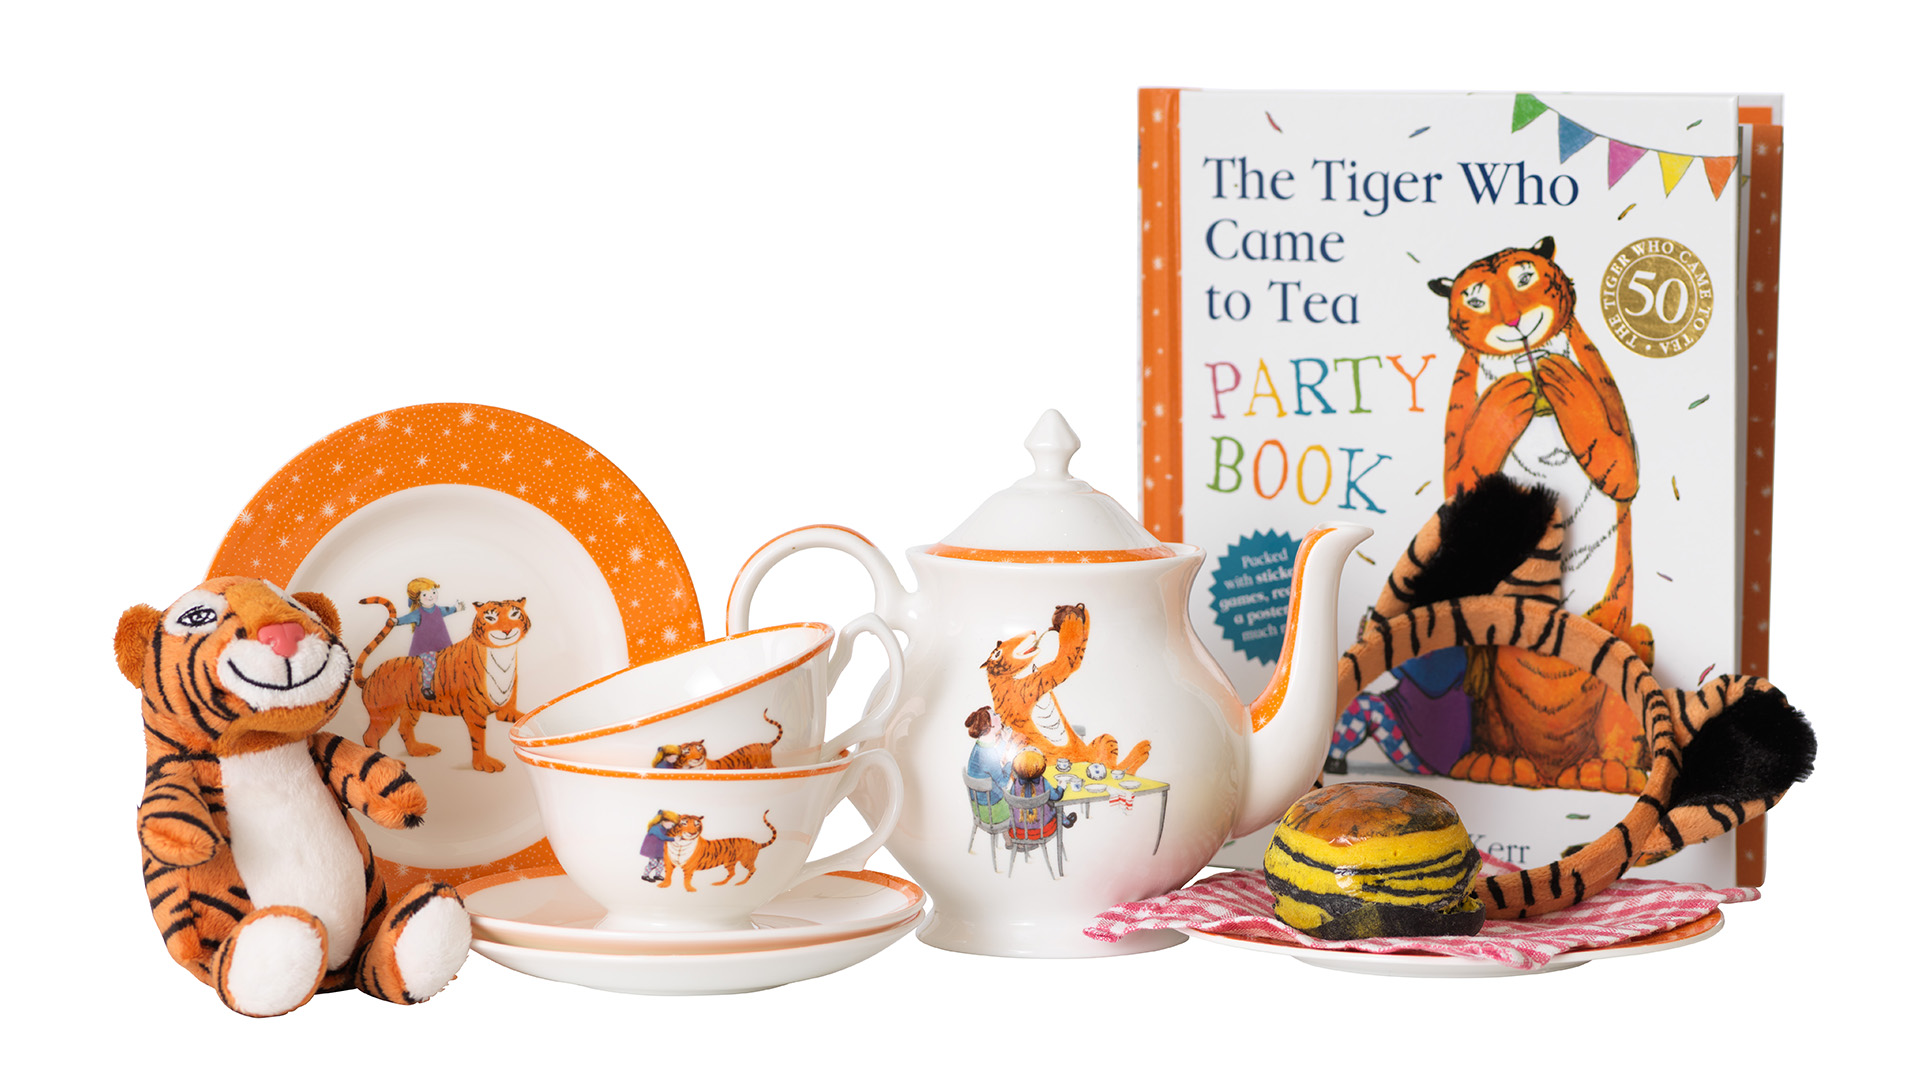 The Tiger Who Came to Tea at The Savoy - China Set